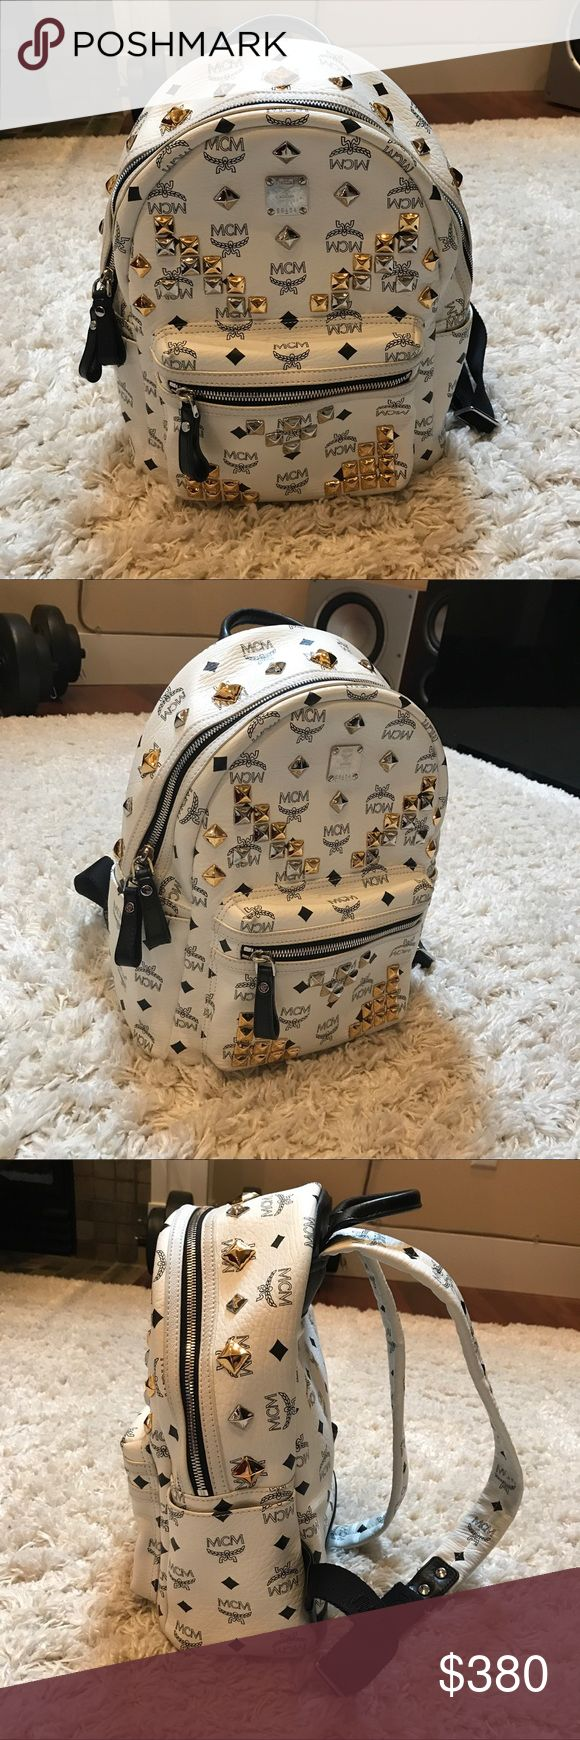 MCM ✨ Small White Studded Backpack 🎒 Originally got it in Korea. The bottom of the backpack has black stain and a little yellow on edges because it's just kind of unavoidable with white leather. But in overall GOOD condition!! And I believe it's SIZE SMALL. MCM Bags Backpacks